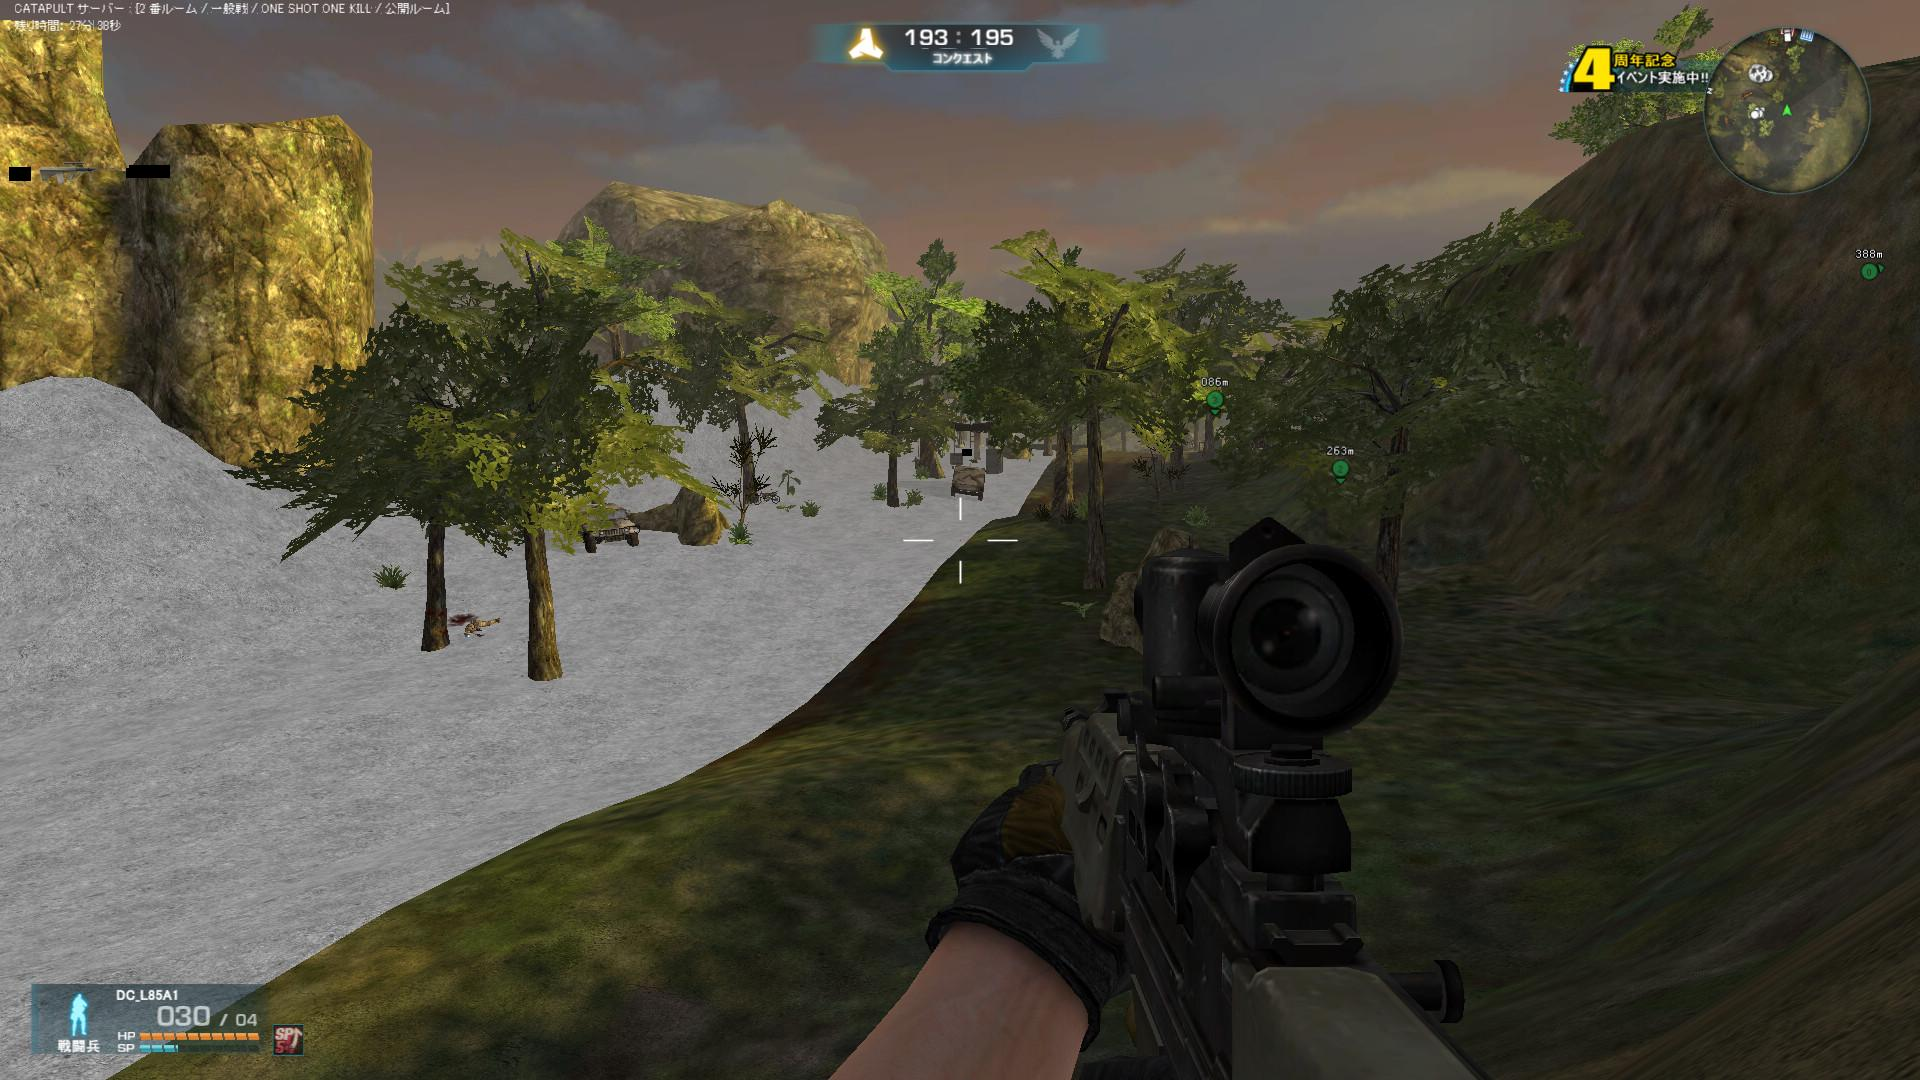 screenshot_056.jpg